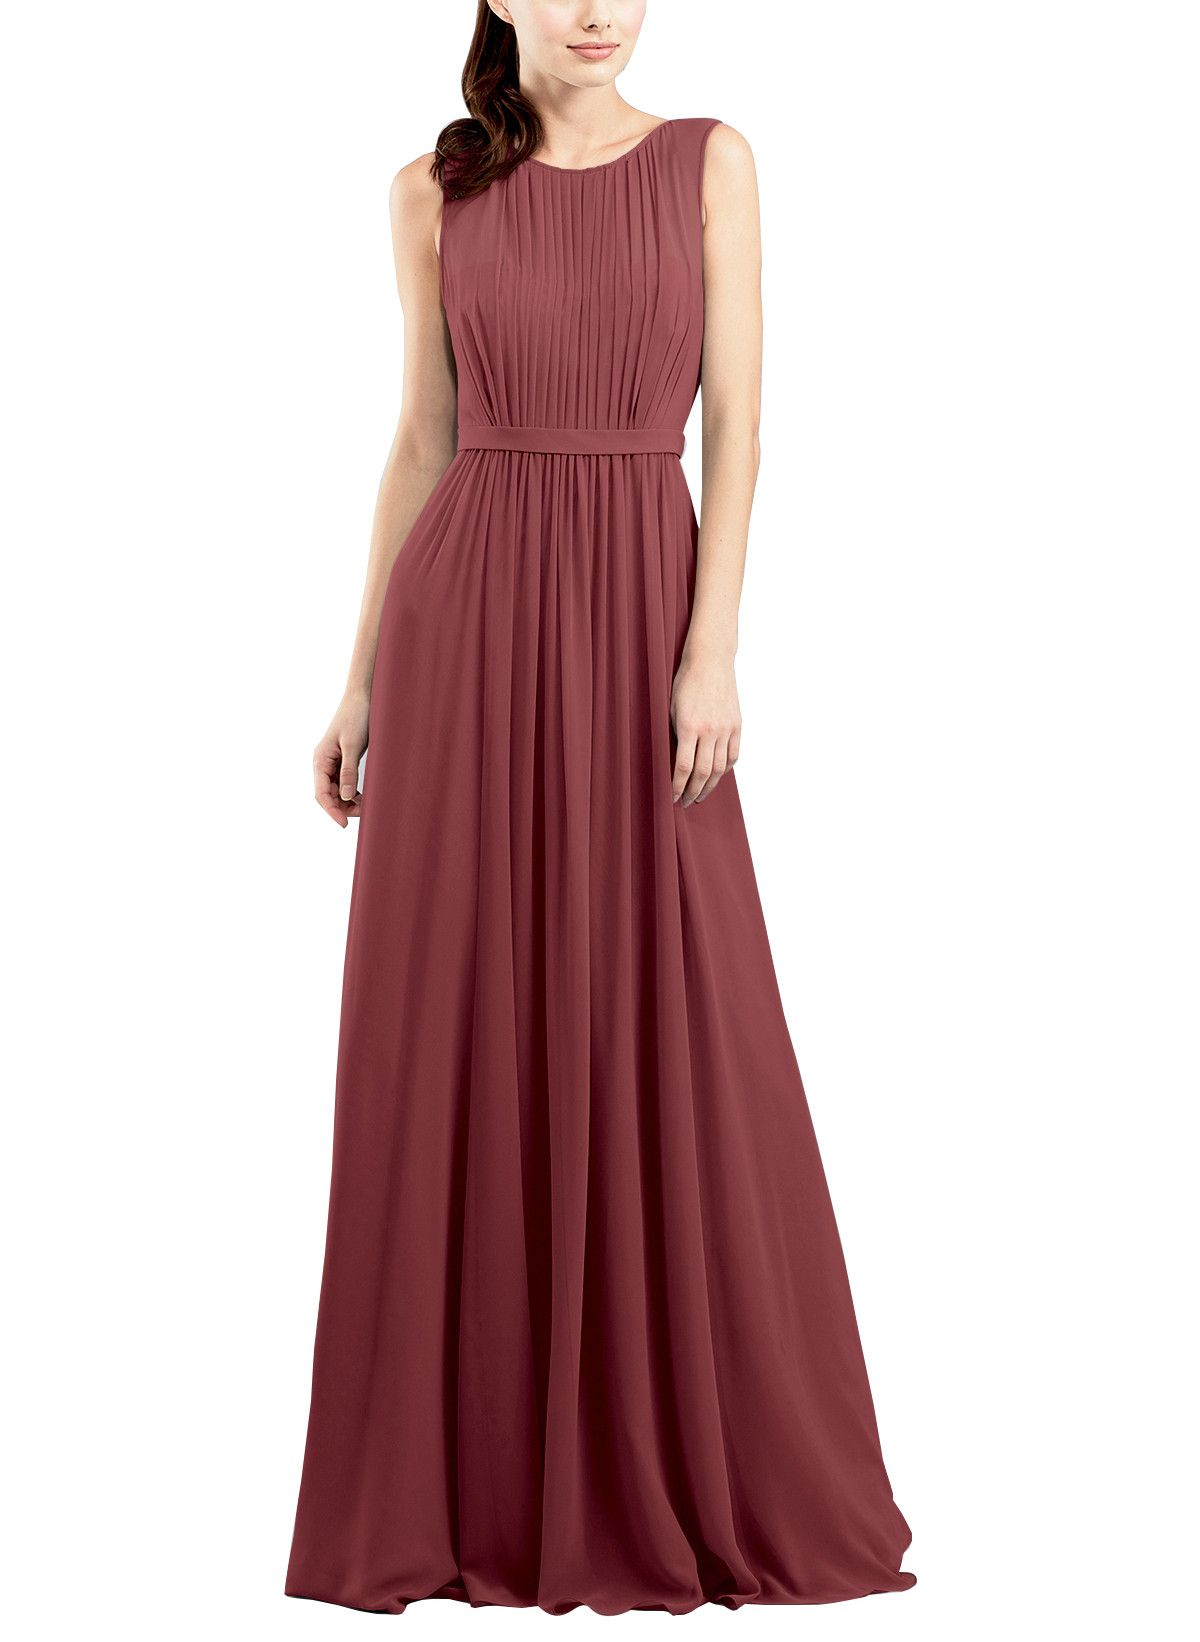 7a26f83c99 Stylist NotesIt s classic and sexy with a great v-back detail. Share this  one with your mom too. -ChloeDescriptionJenny Yoo VivienneFull length  bridesmaid ...